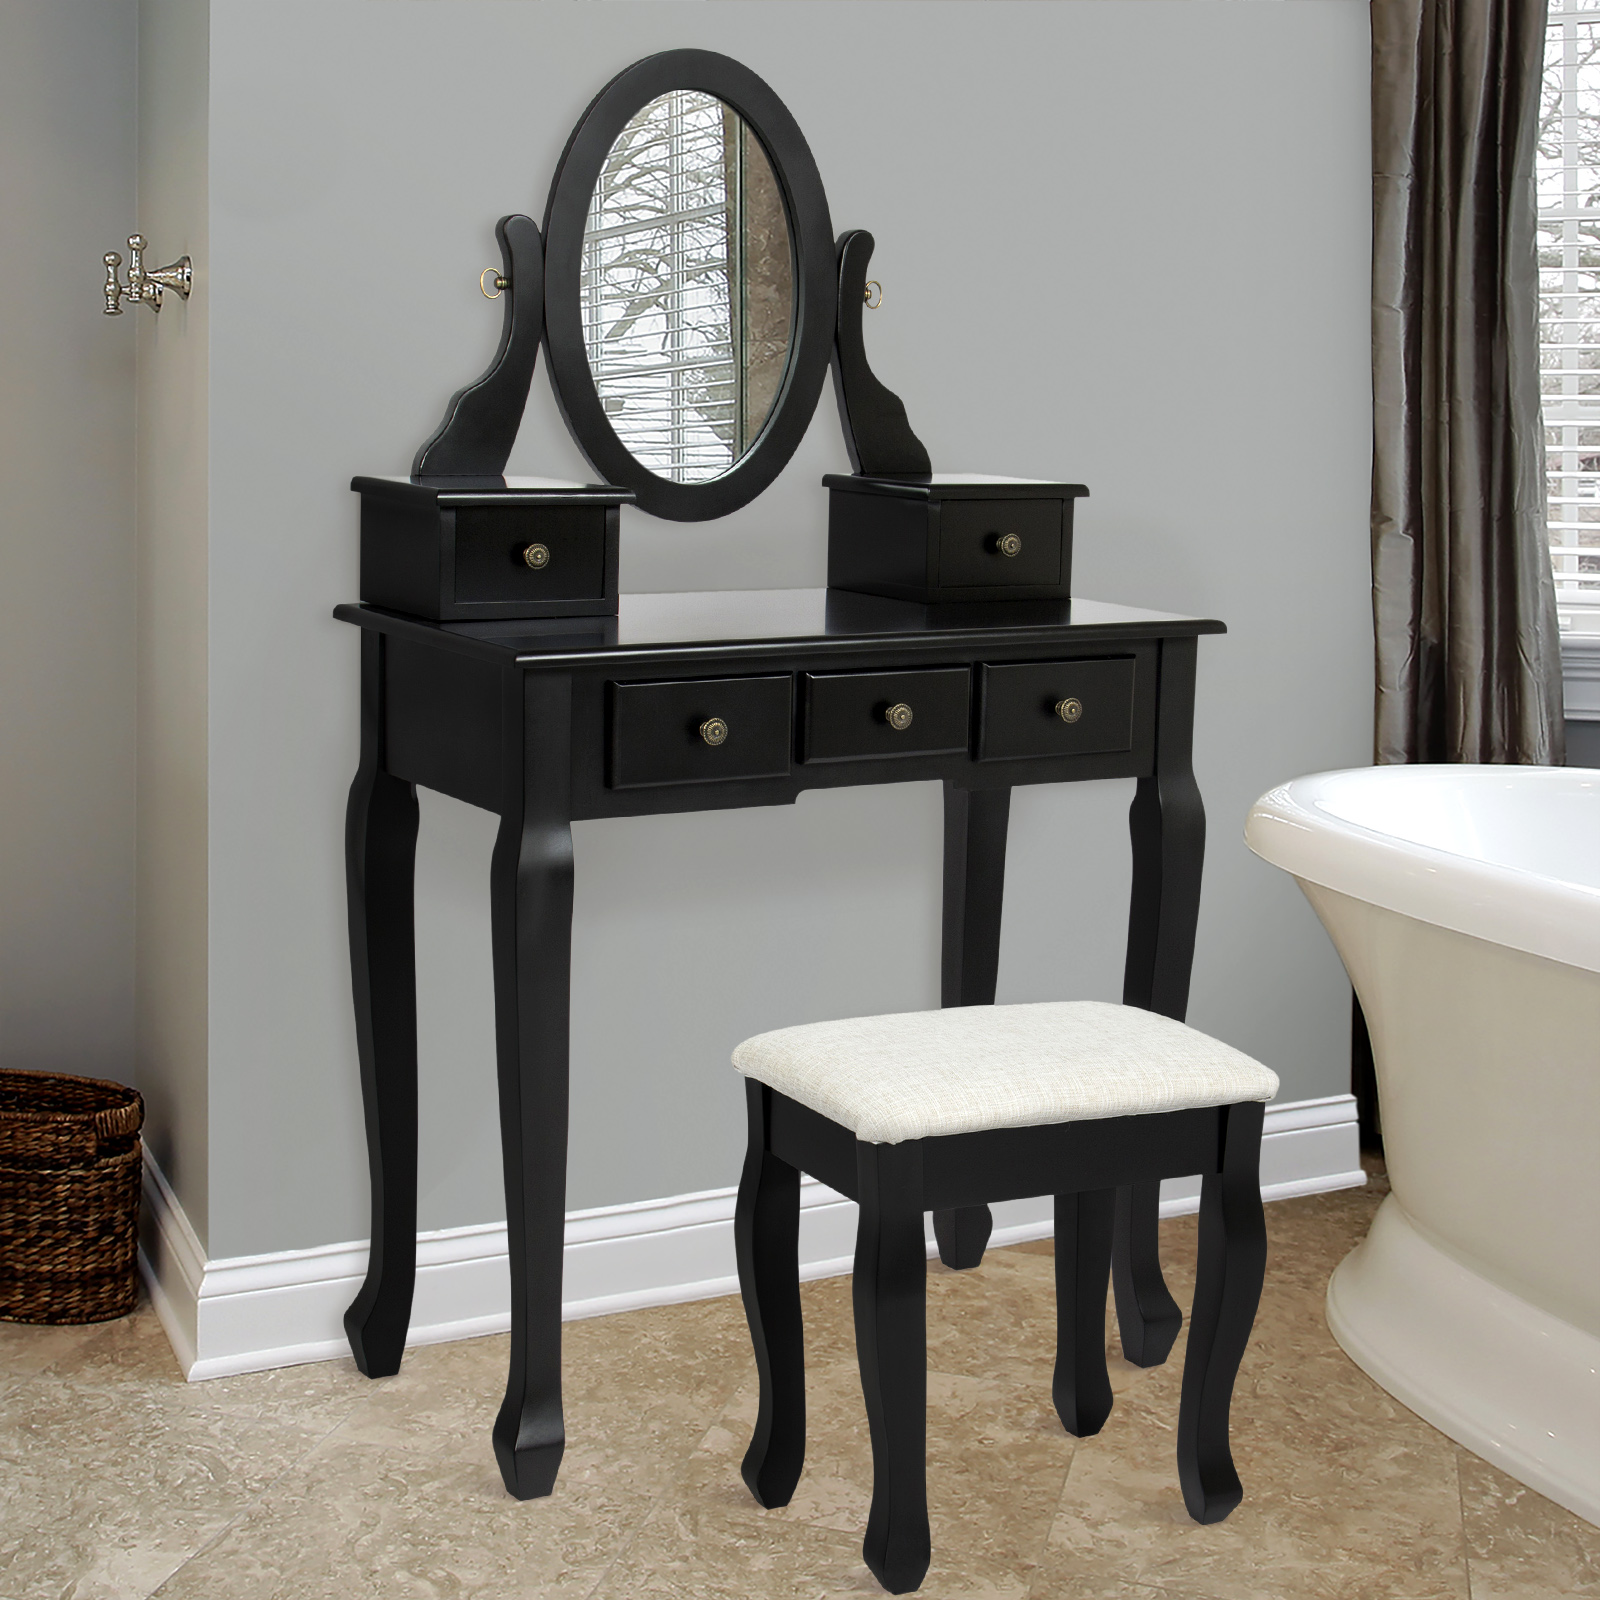 Best Choice Products Vanity Table and Stool Set w  Adjustable Oval Mirror, 5 Drawers, Padded Seat by Best Choice Products